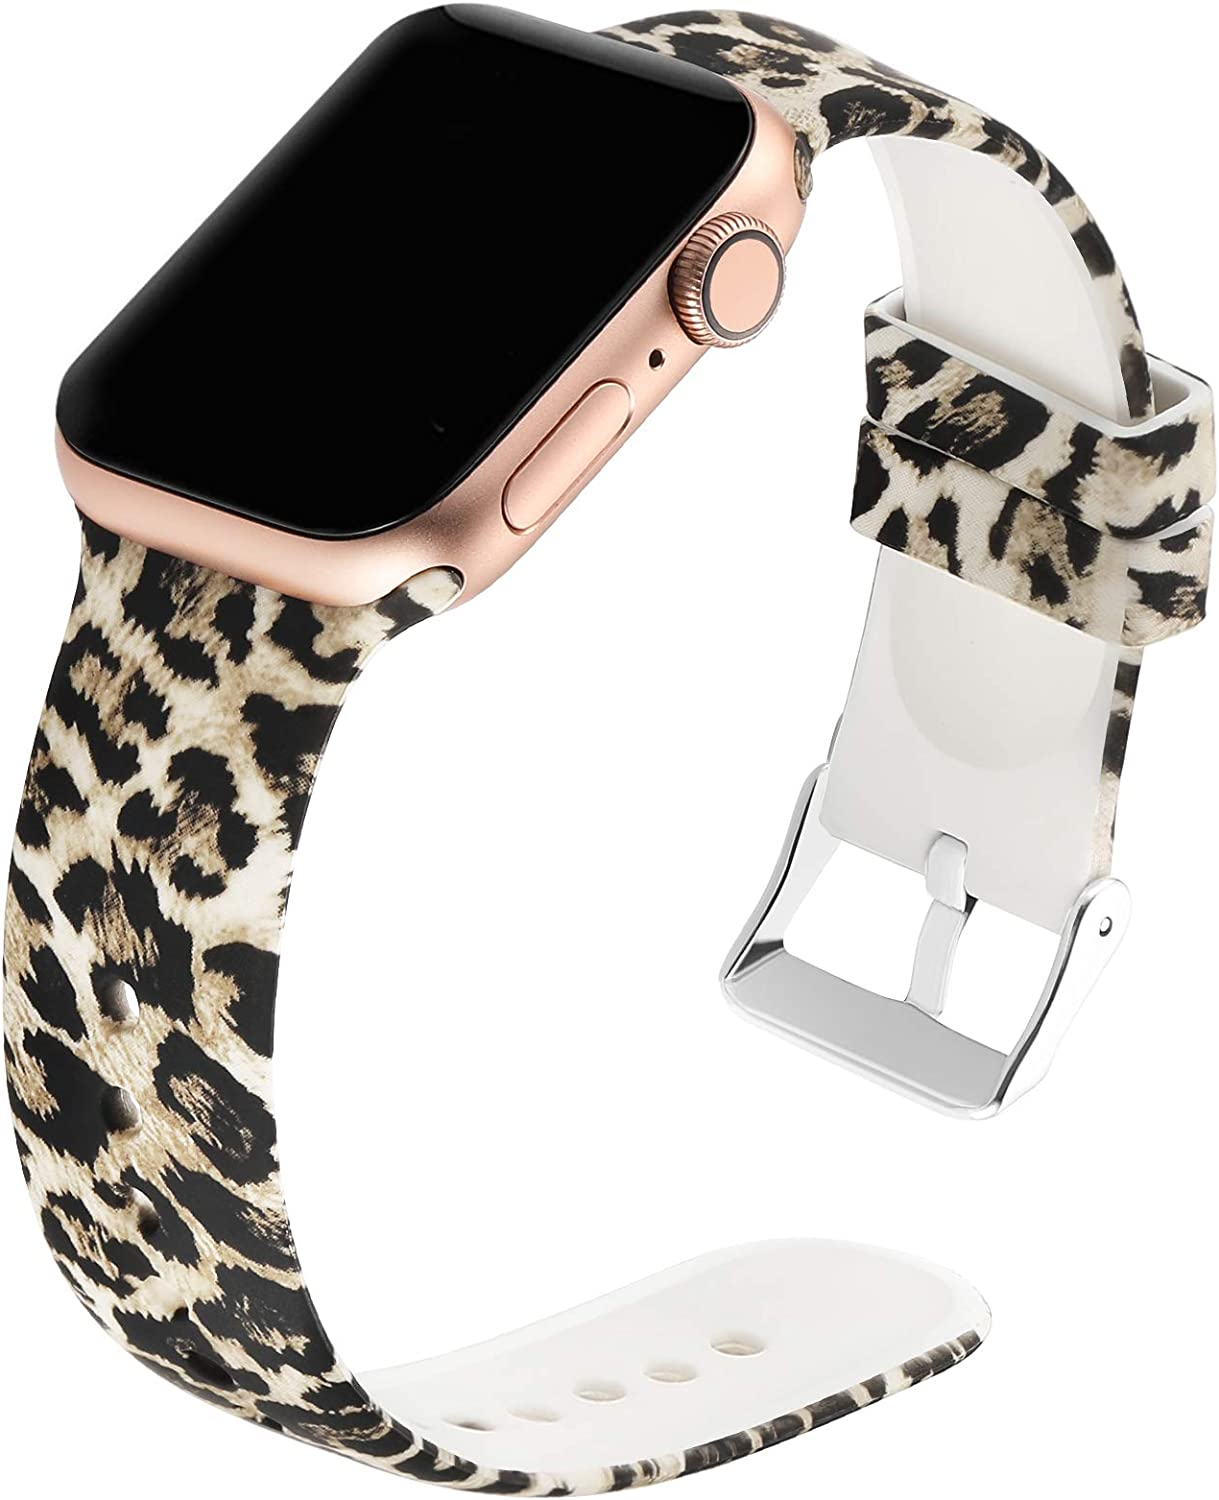 Suppeak Band Compatible with Apple Watch Series 4 Series 3 Series 2 Series 1 38mm 40mm, Women Men Soft Silicone Sport Wristband, Pattern Printed Leopard